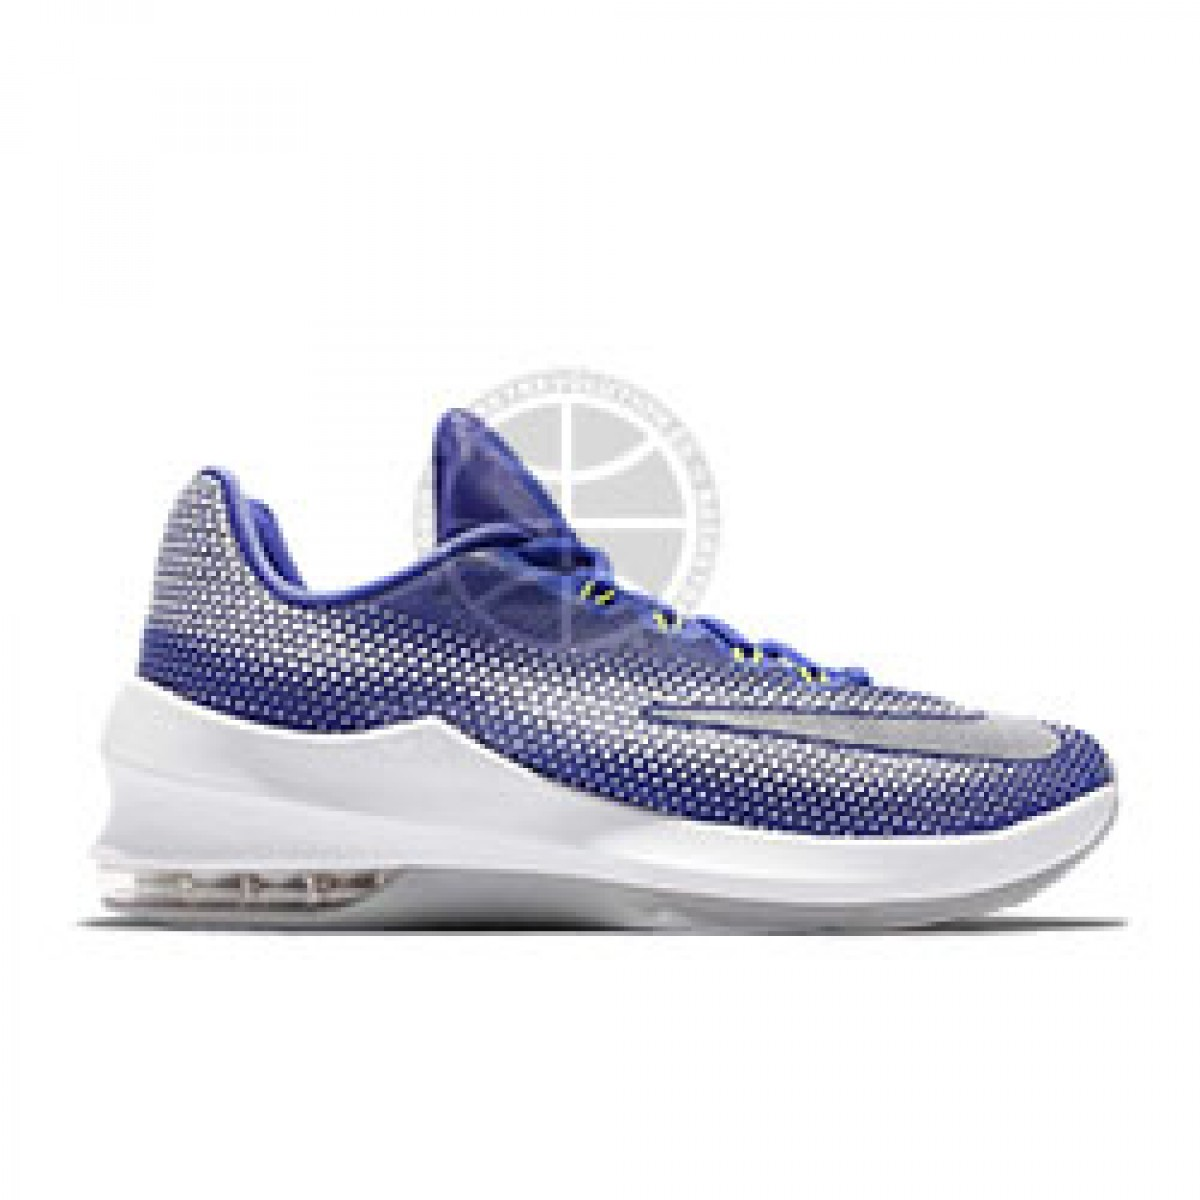 Nike Air Max Infuriate GS 'Blue/White' 869991-400